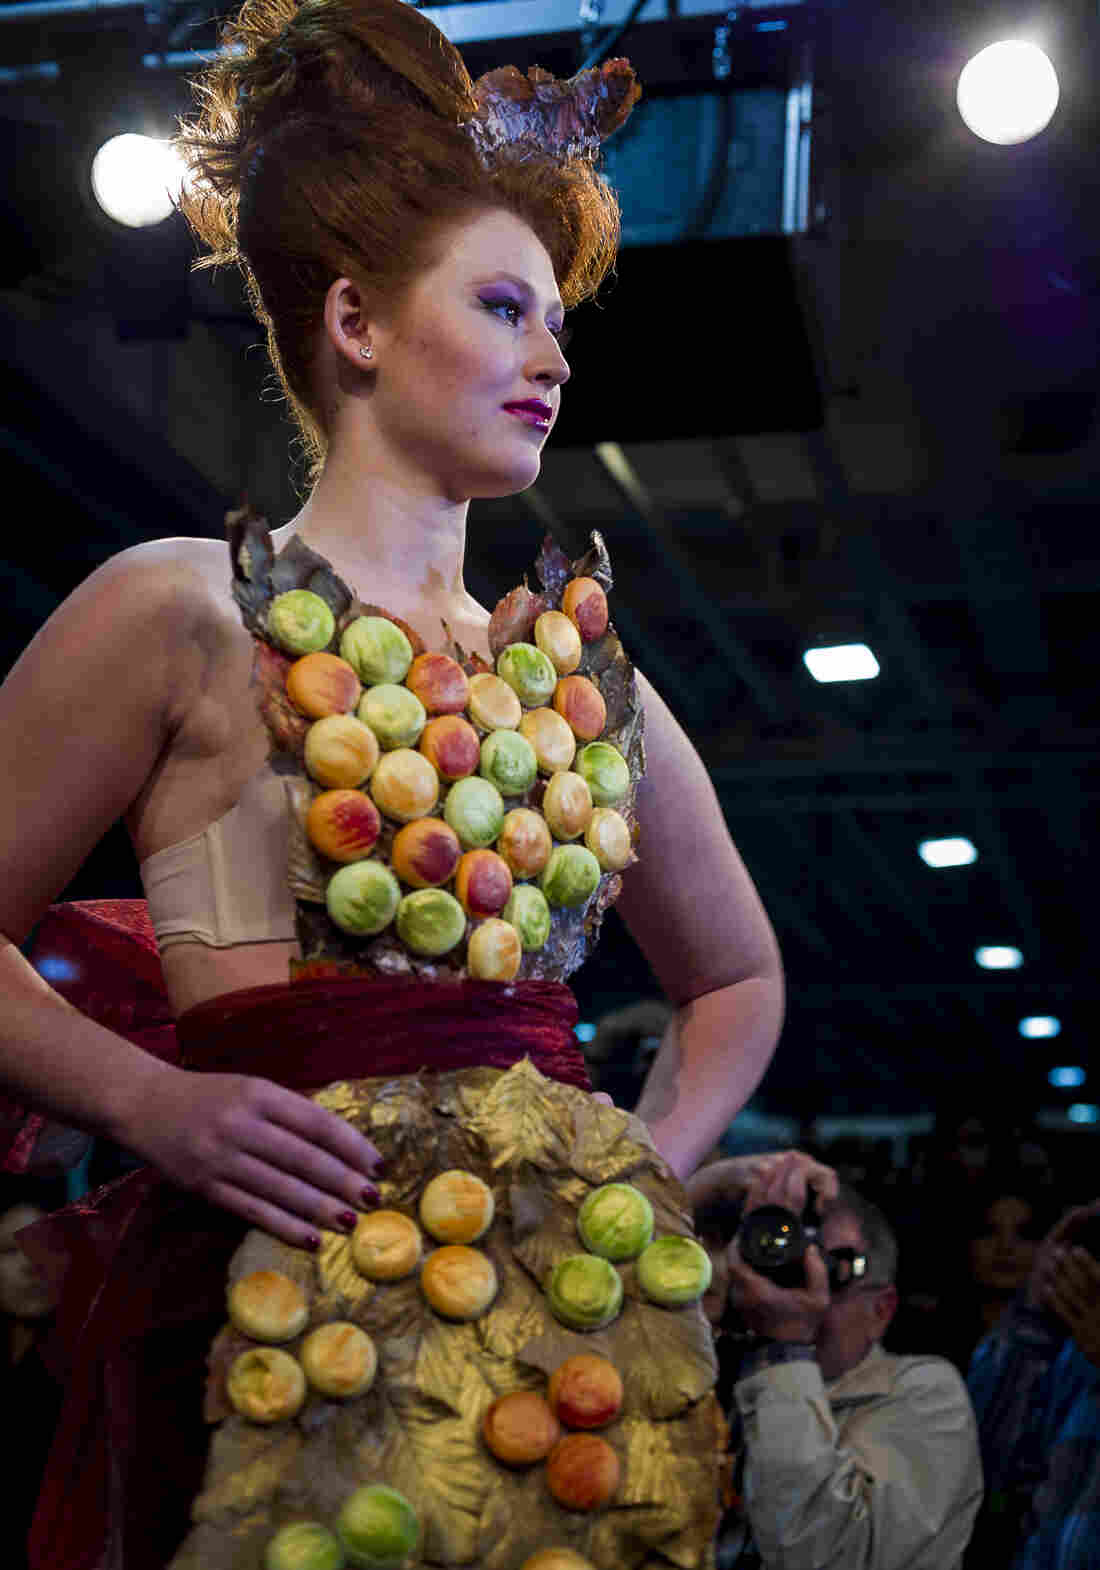 London patisserie On Cafe's entry featured a gown covered in macarons, of course.